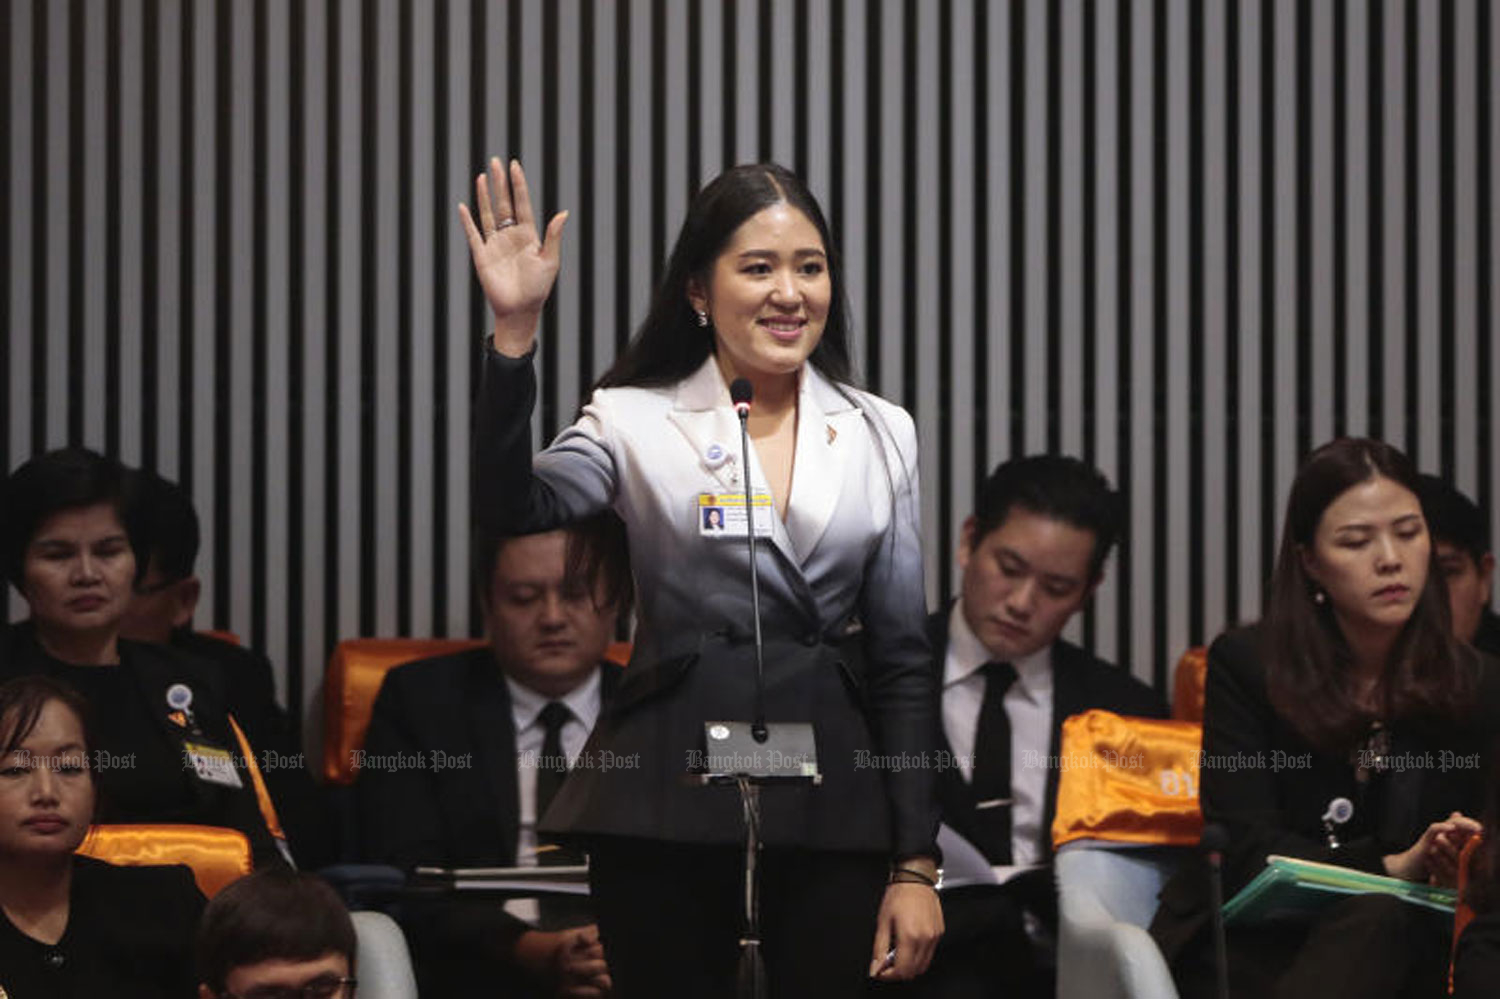 Future Forward Party MP Pannika Wanich raises her hand to speak at a parliamentary session in Bangkok last Wednesday. (Photo by Patipat Janthong)